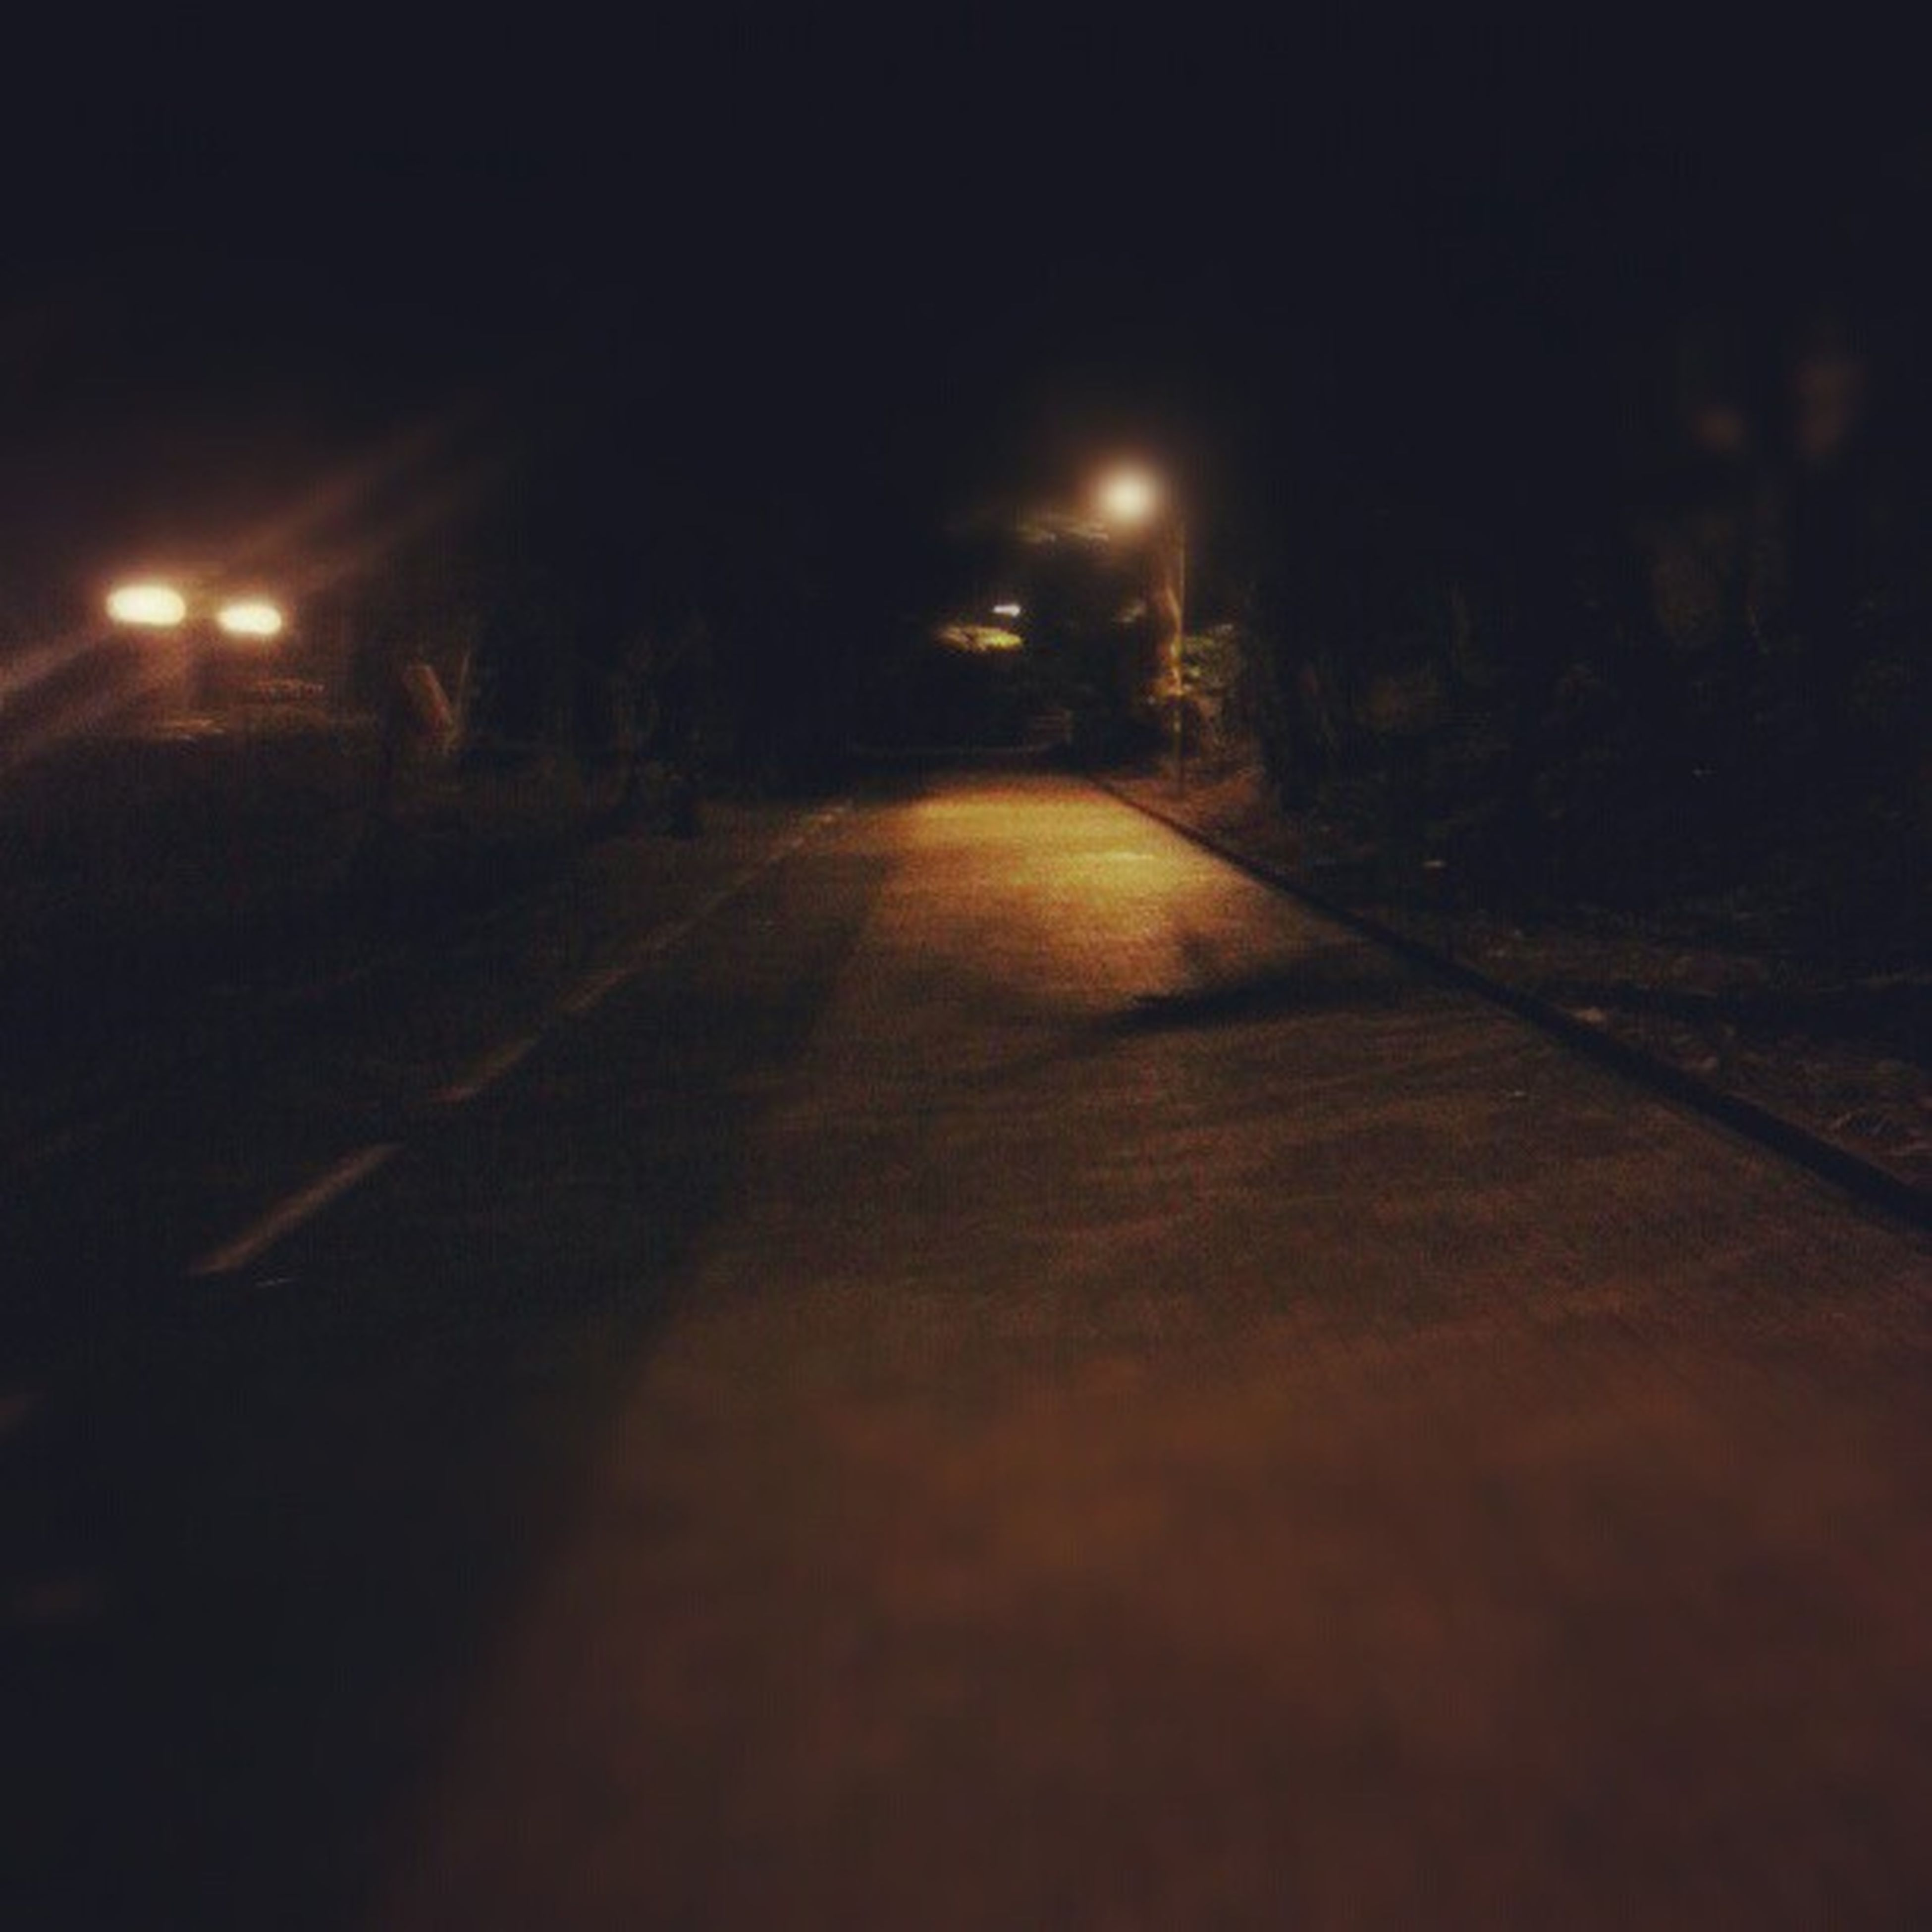 night, illuminated, the way forward, diminishing perspective, vanishing point, street light, dark, lighting equipment, road, street, surface level, empty, transportation, light - natural phenomenon, no people, outdoors, long, built structure, copy space, architecture